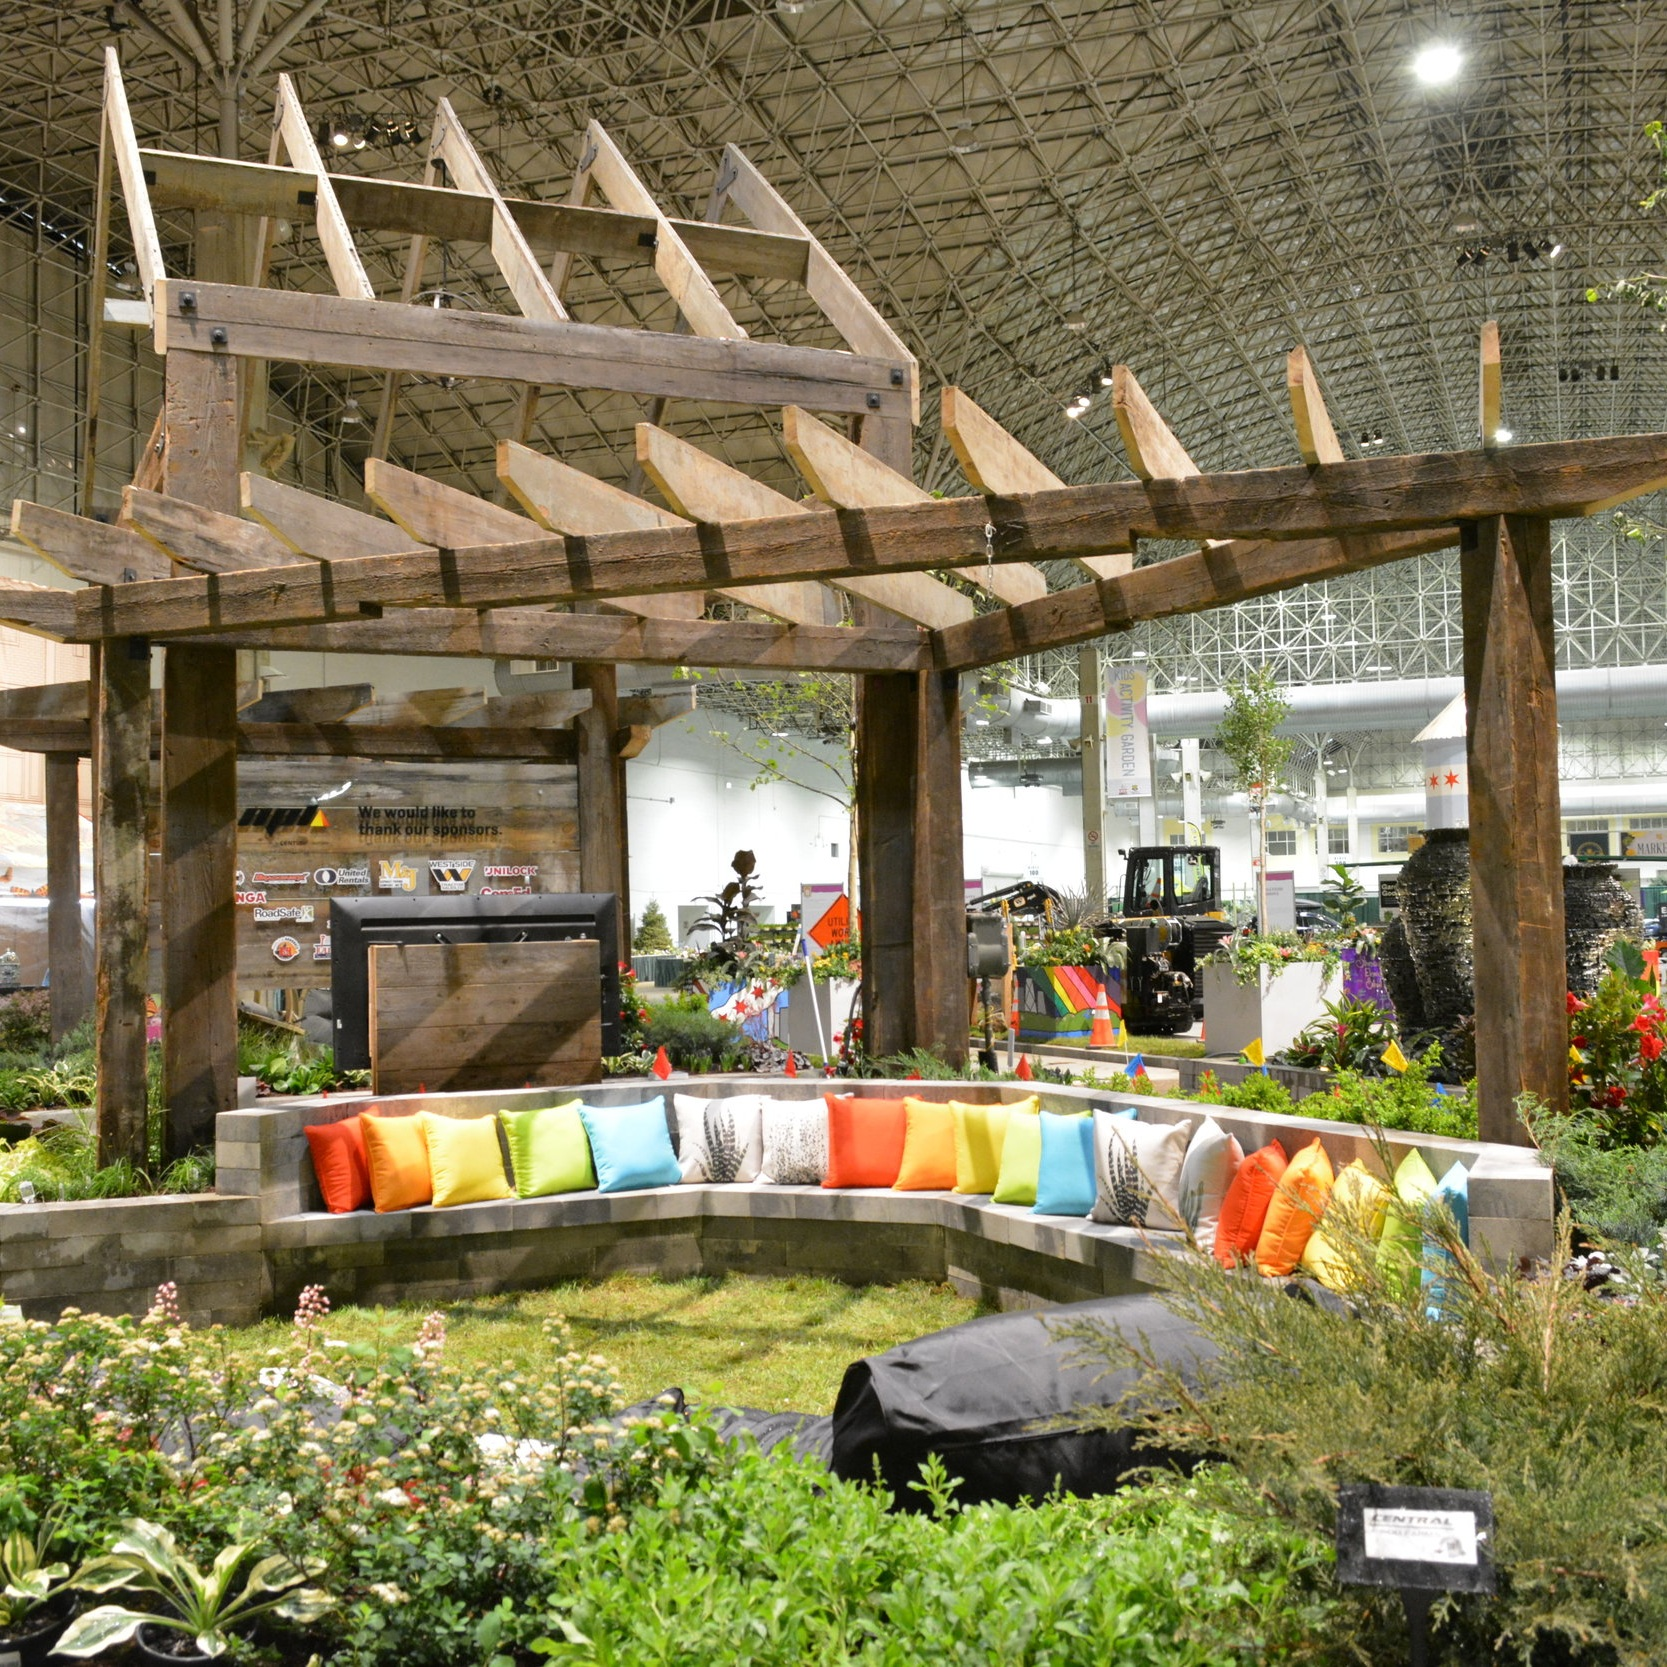 NPL DIVERSITY GARDEN - 2018 FLOWER & GARDEN SHOW  Landscape Design + Build  Chicago, Illinois